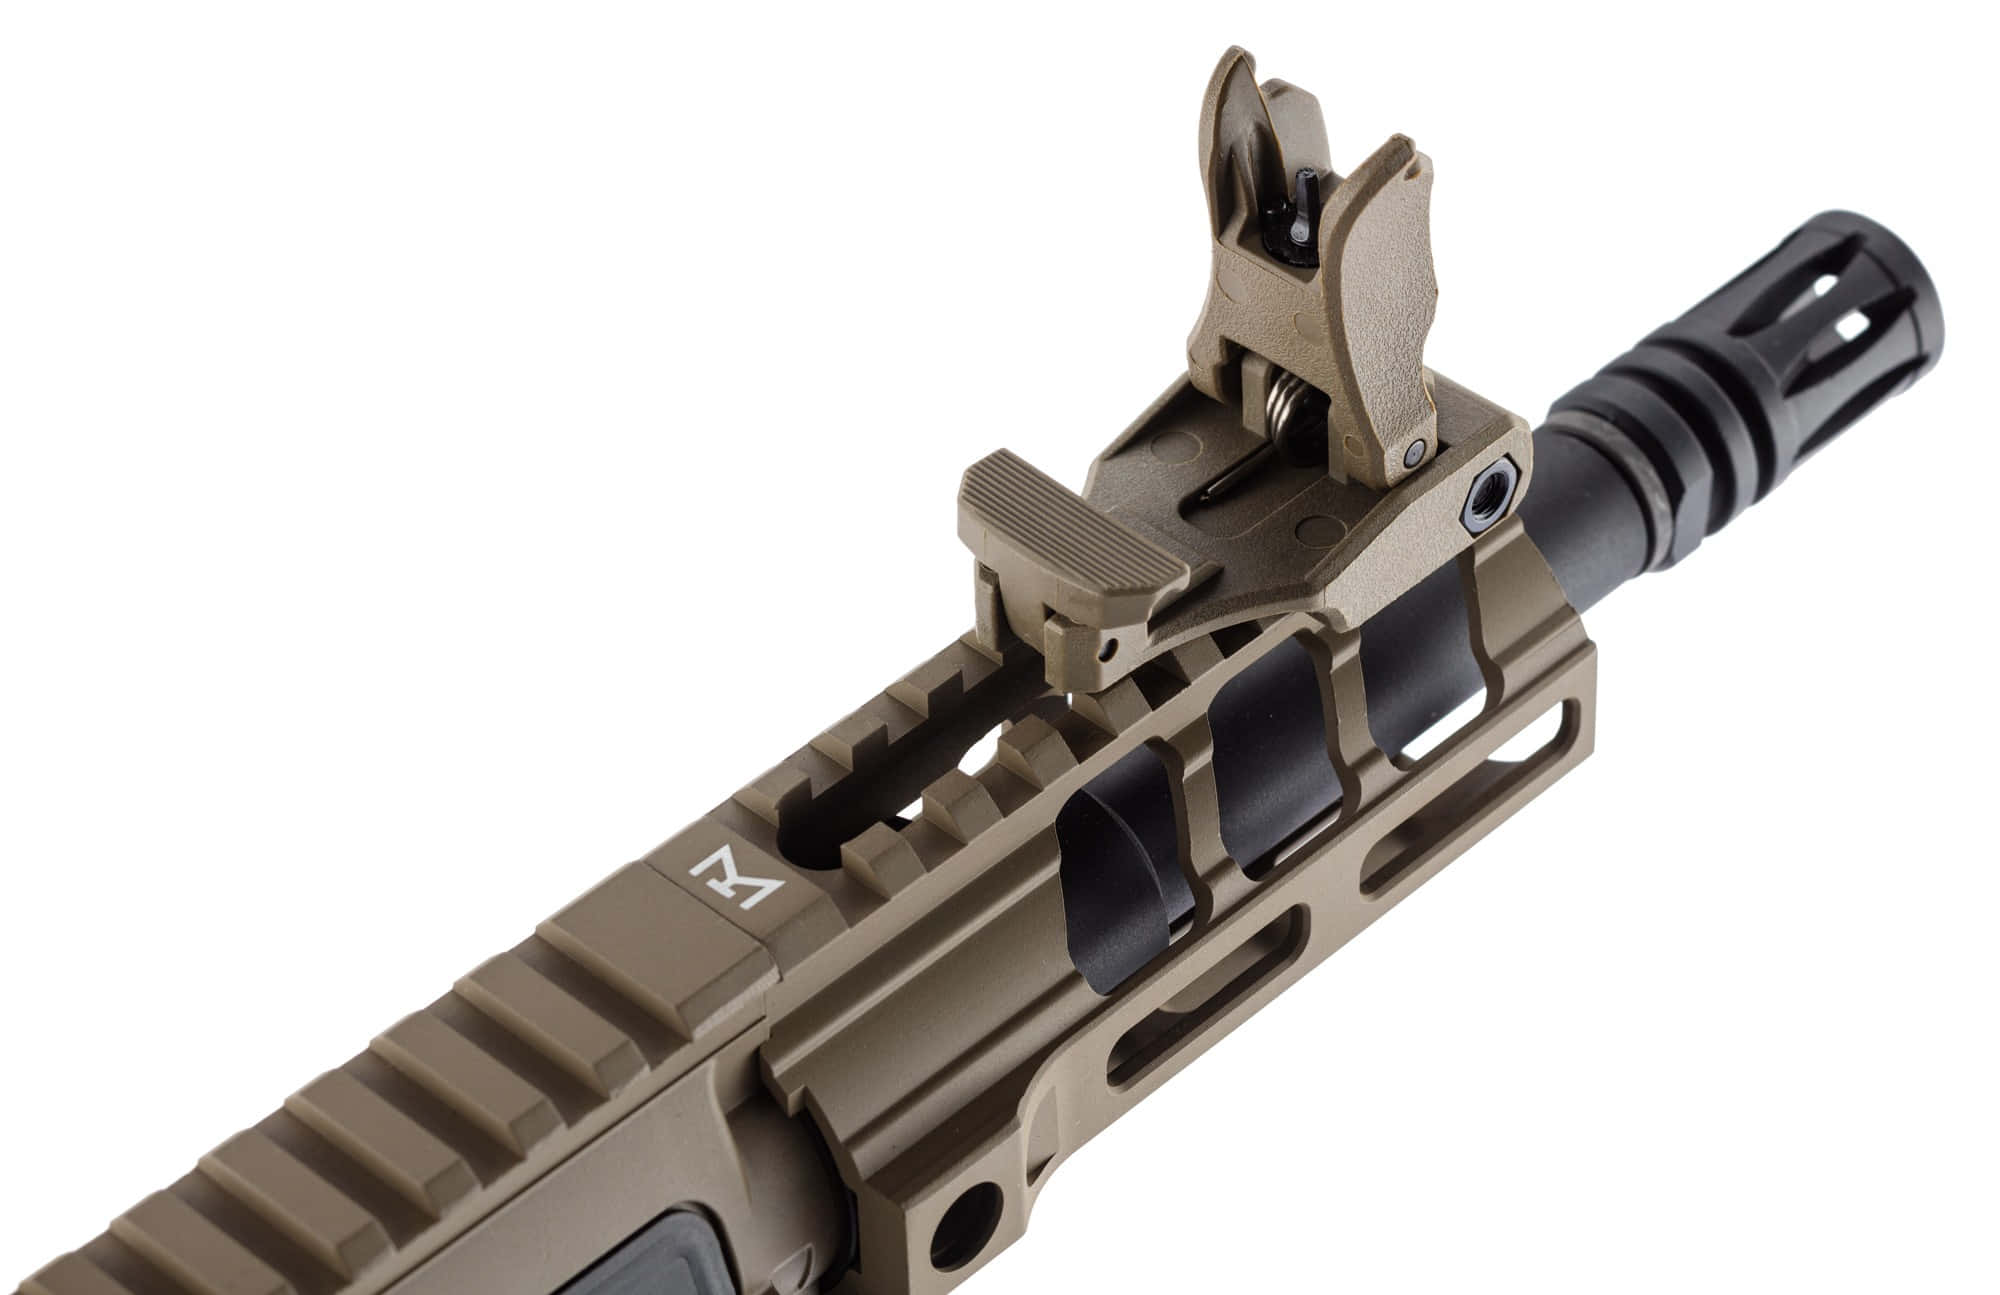 LK9077-10 Réplique AEG LT-34 Proline GEN2 Enforcer Battle Hawk PDW 4' tan - CLK9000